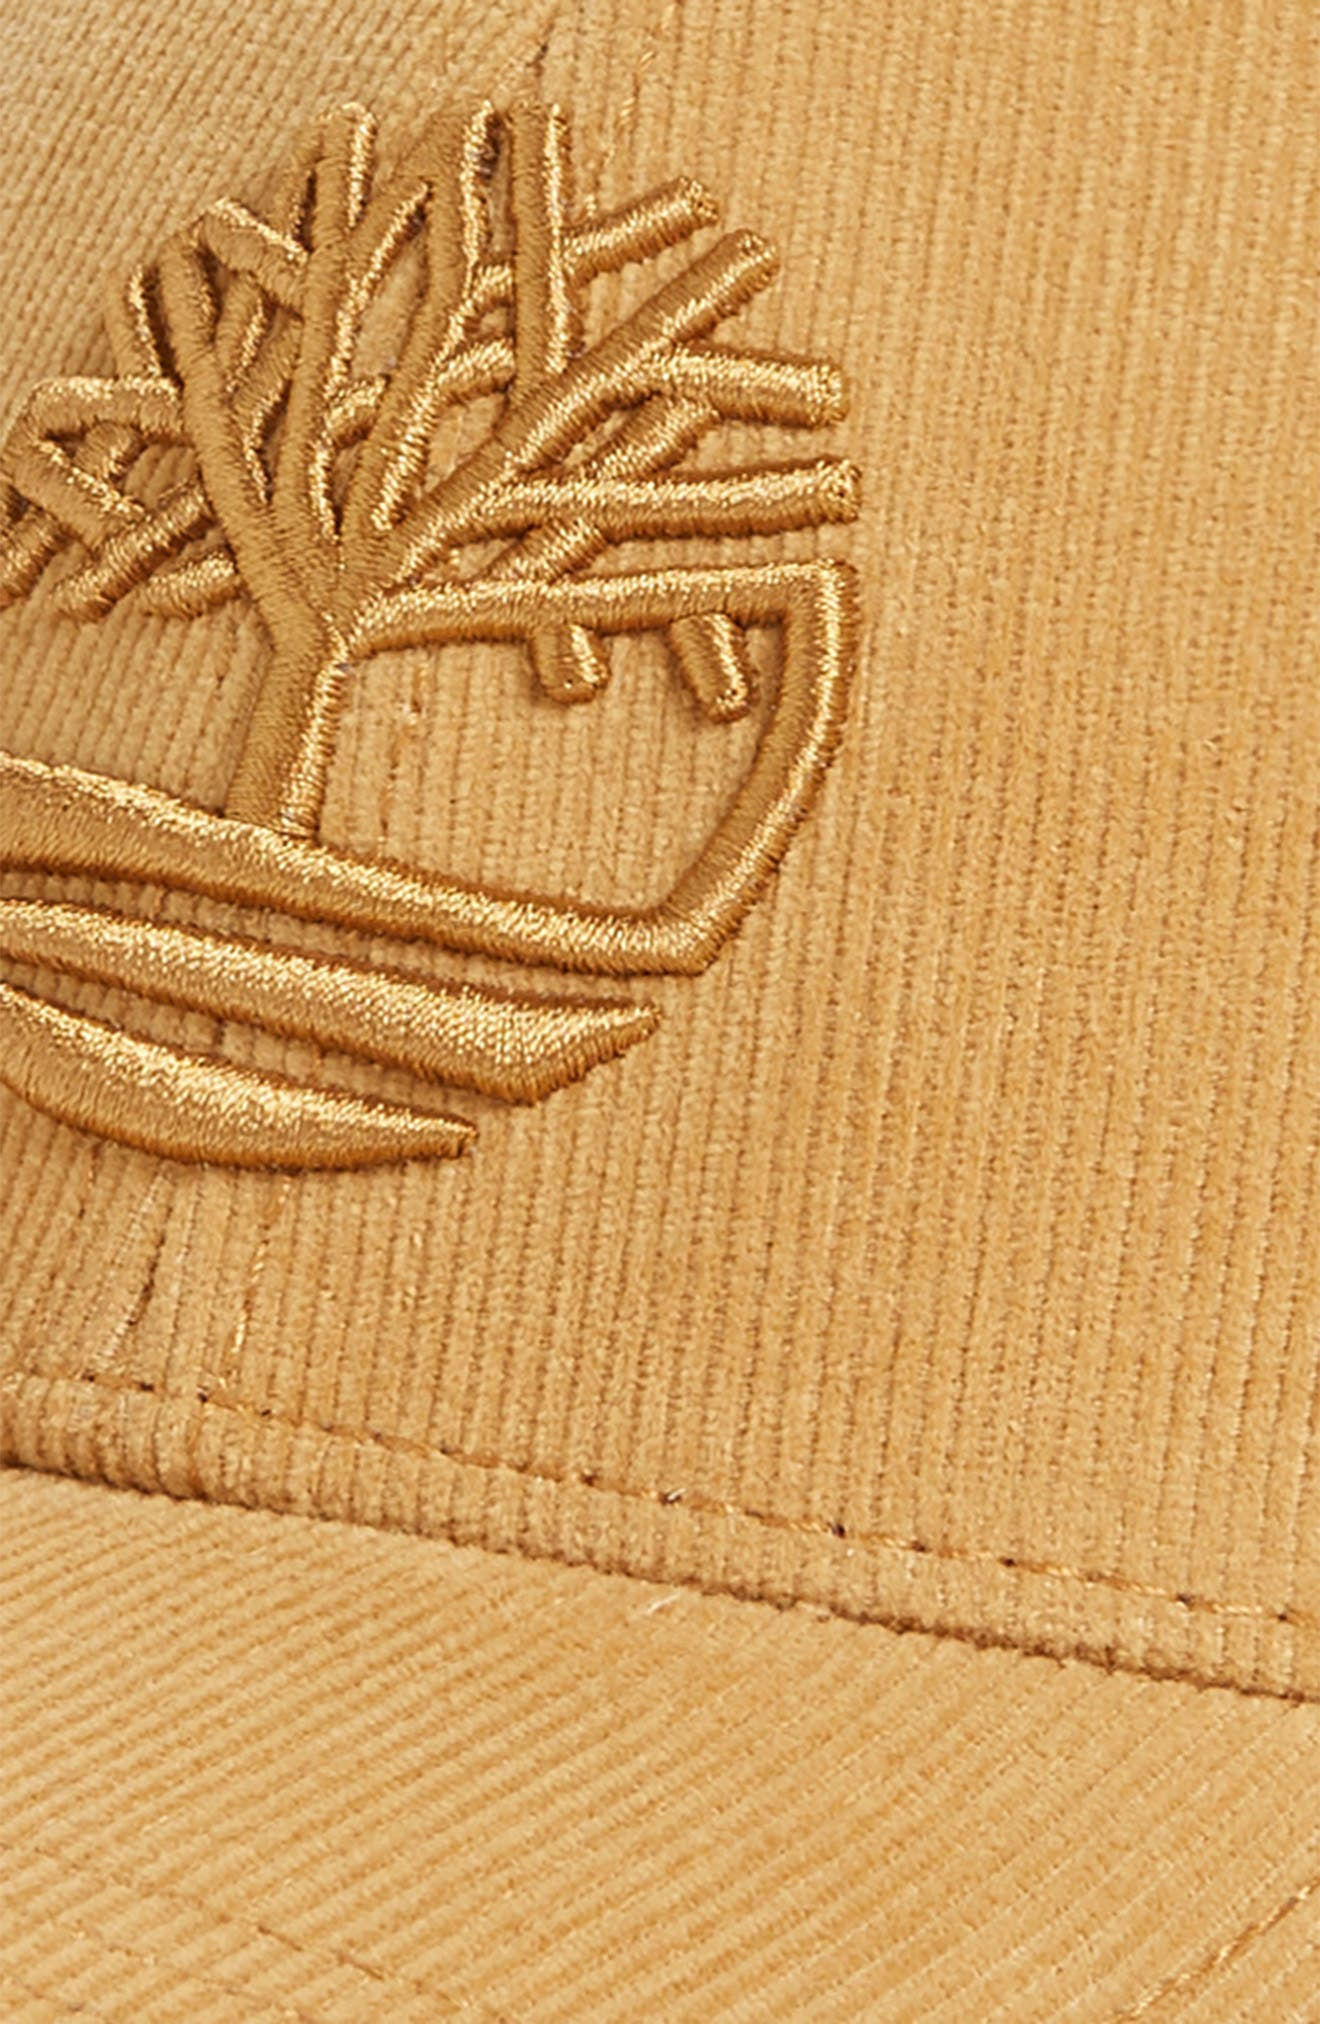 TIMBERLAND,                             Logo Embroidered Corduroy Ball Cap,                             Alternate thumbnail 3, color,                             WHEAT